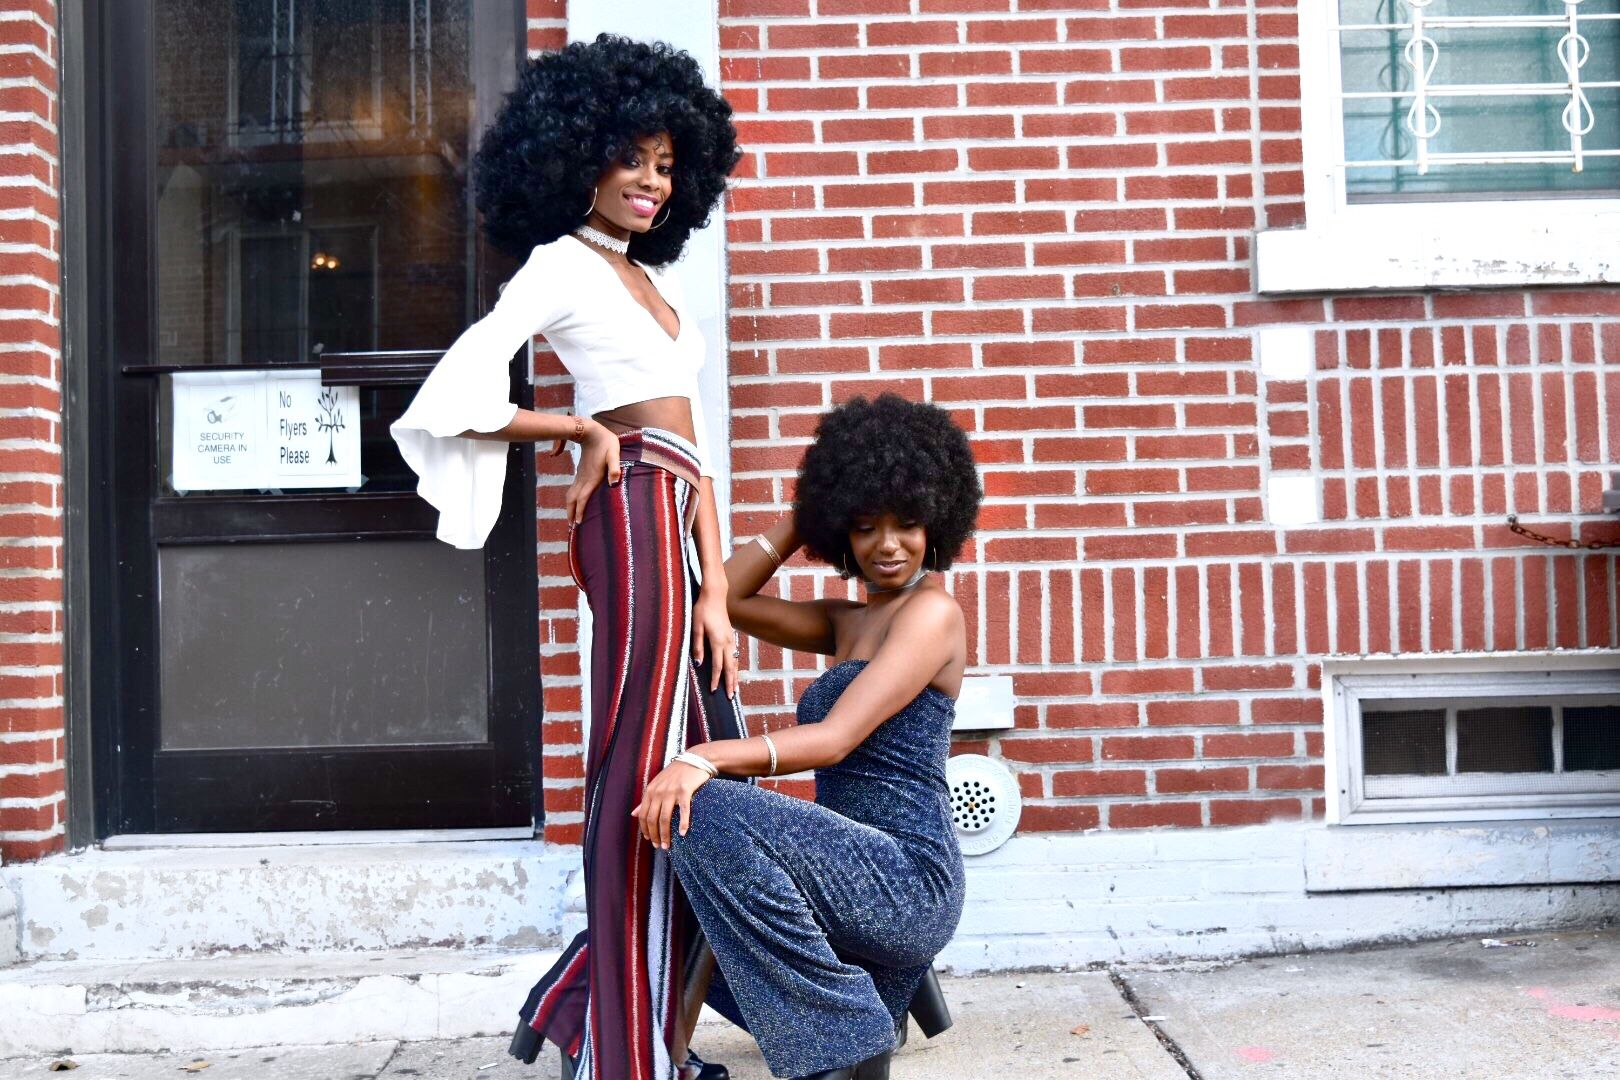 Pin By Janives Labossiere On Styledbyjayl African American Fashion 70s Inspired Fashion African American Women